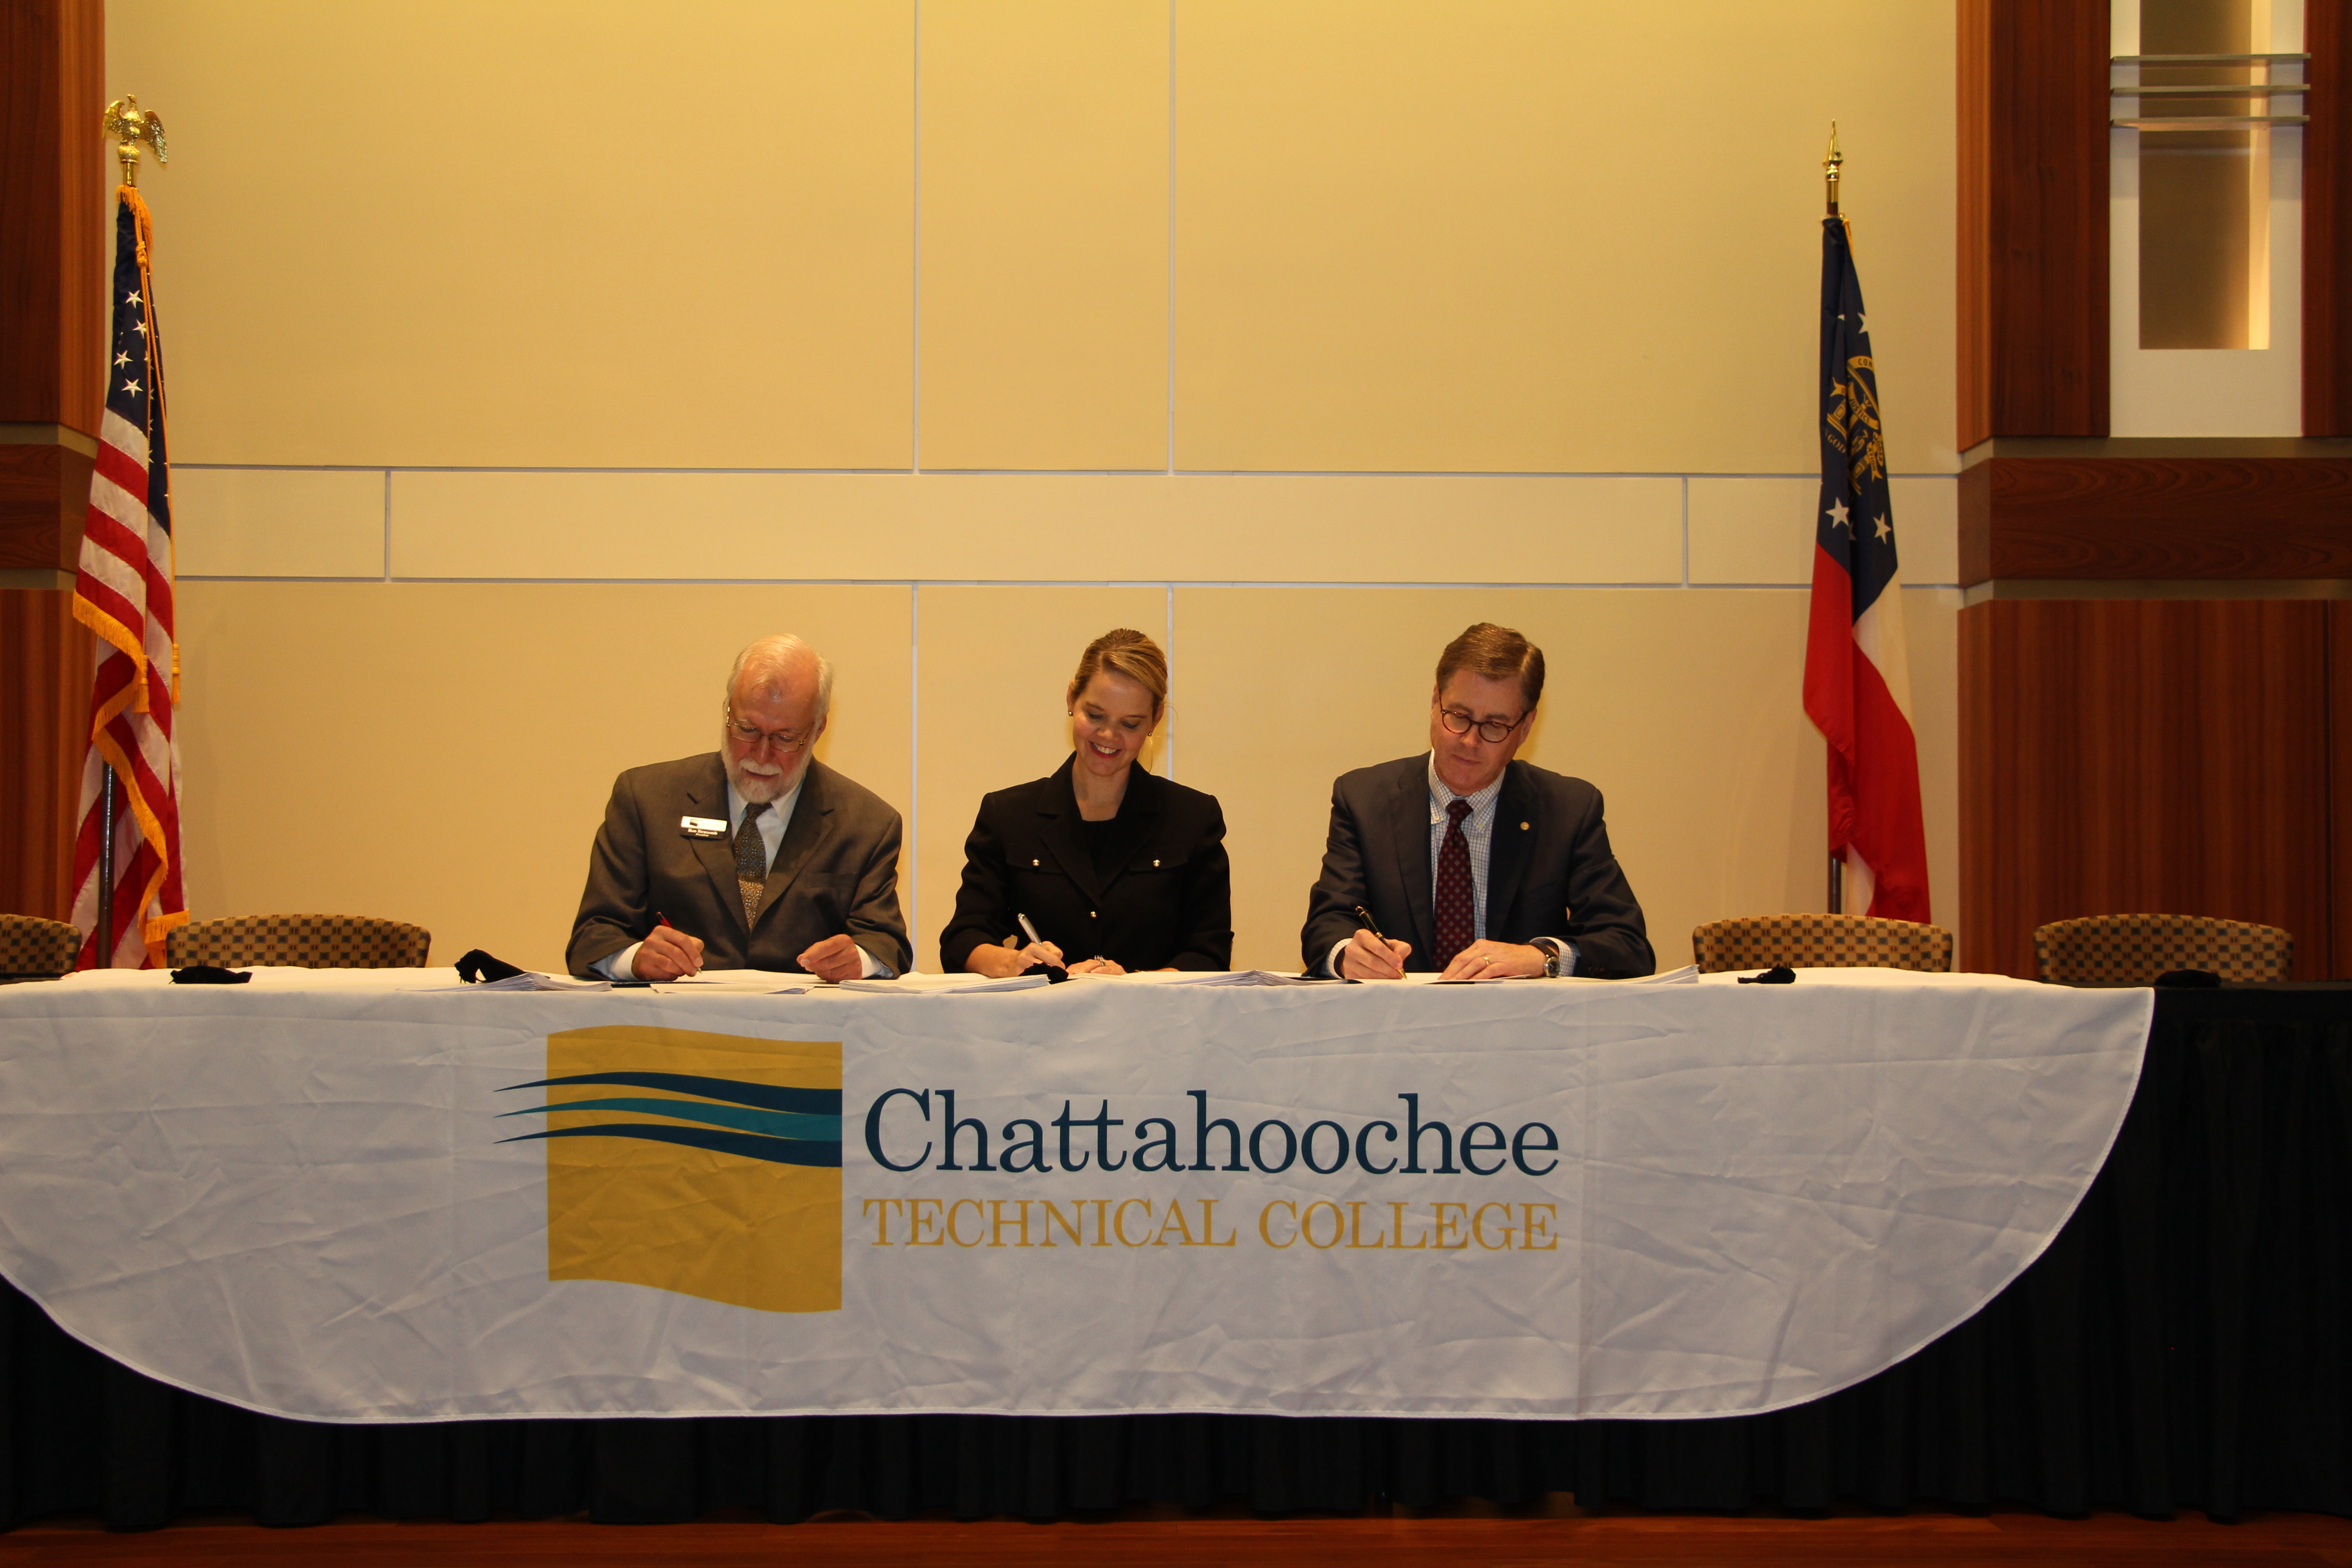 Chattahoochee Technical College (CTC) held an articulation agreement signing ceremony with Valdosta State University (VSU) on Monday, Nov. 9, following the quarterly Cartersville/Bartow Chamber Luncheon at the Clarence Brown Conference Center in Cartersville. From left, CTC President Dr. Ron Newcomb, Technical College System of Georgia (TCSG) Commissioner Gretchen Corbin, and VSU President Cecil P. Staton sign the agreements that will allow CTC students to continue their college education by taking online courses with VSU.